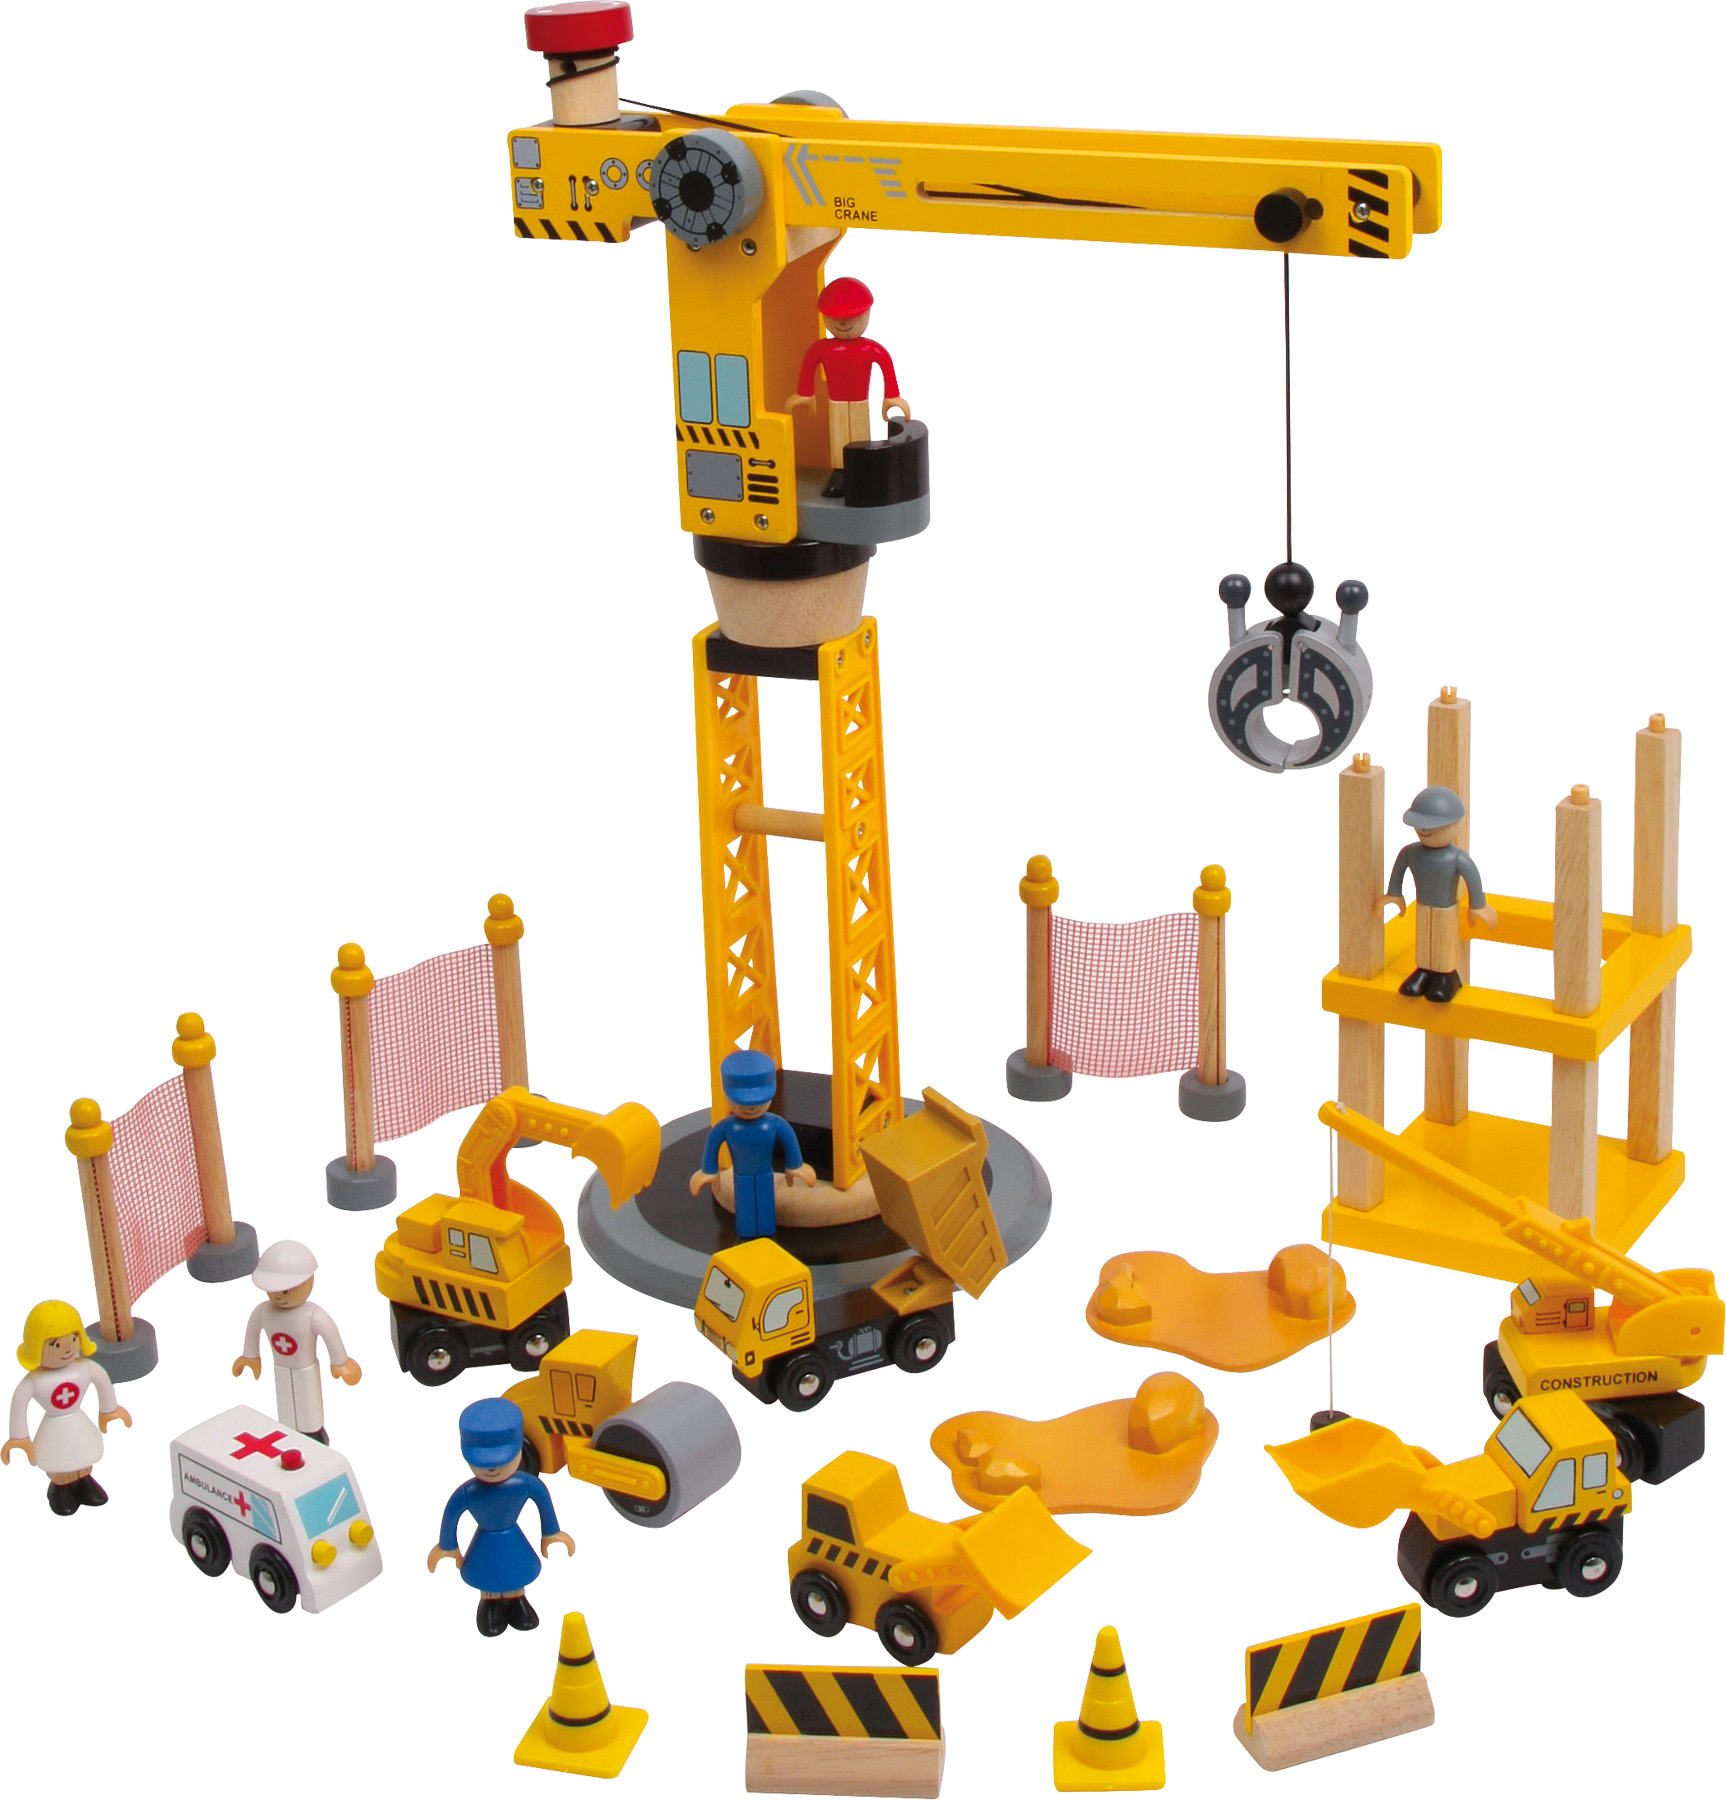 Construction Site Toys : Crane play set city cm wood construction site wooden